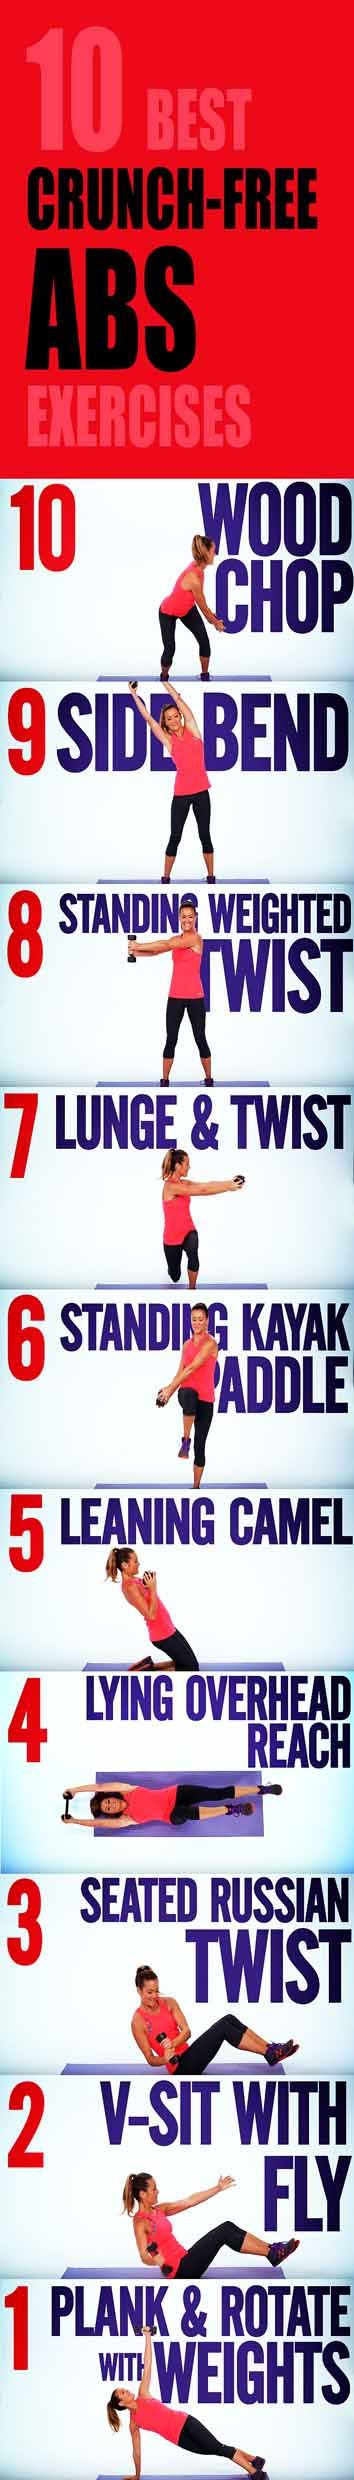 10 Crunch-Free ABS Exercises